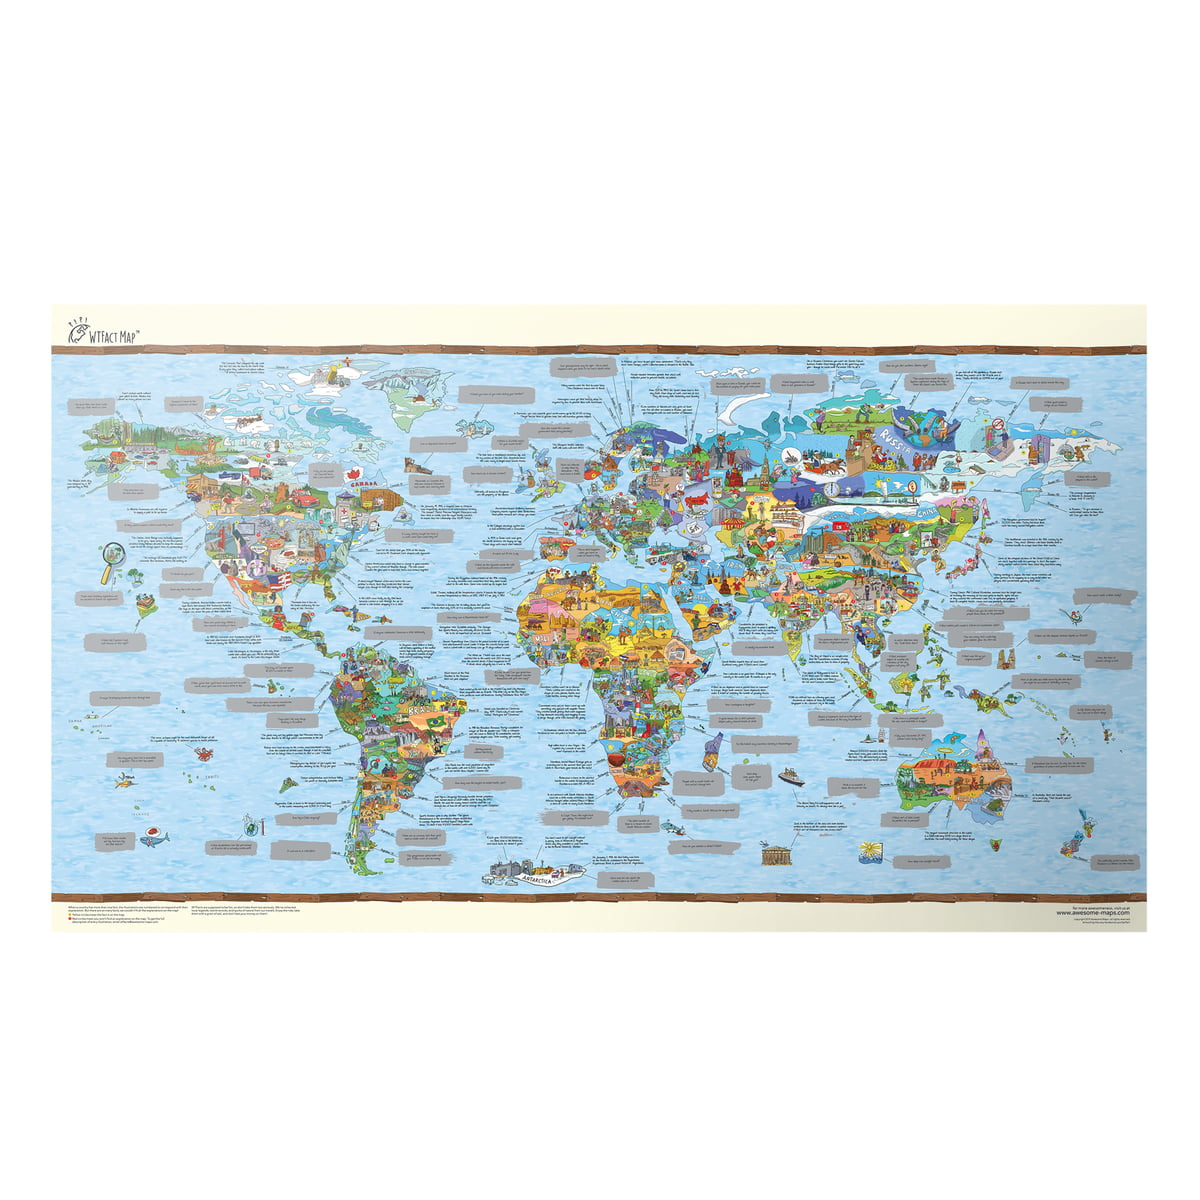 K b wtfact map fra awesome maps i vores shop - Awesome englisch ...